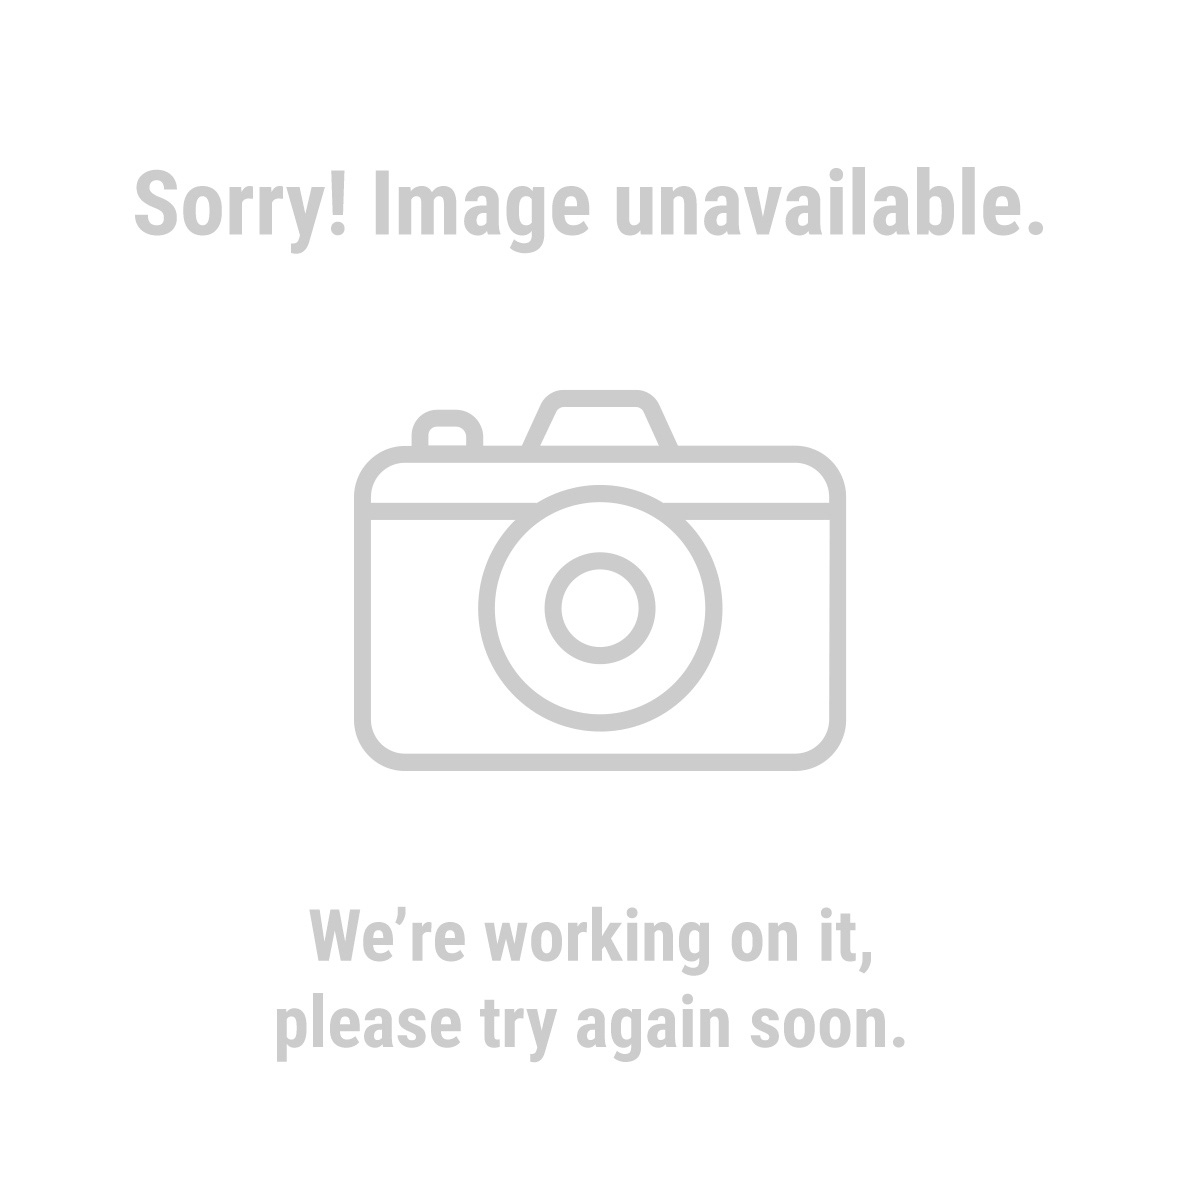 Western Safety 41980 Leather Palm Gloves